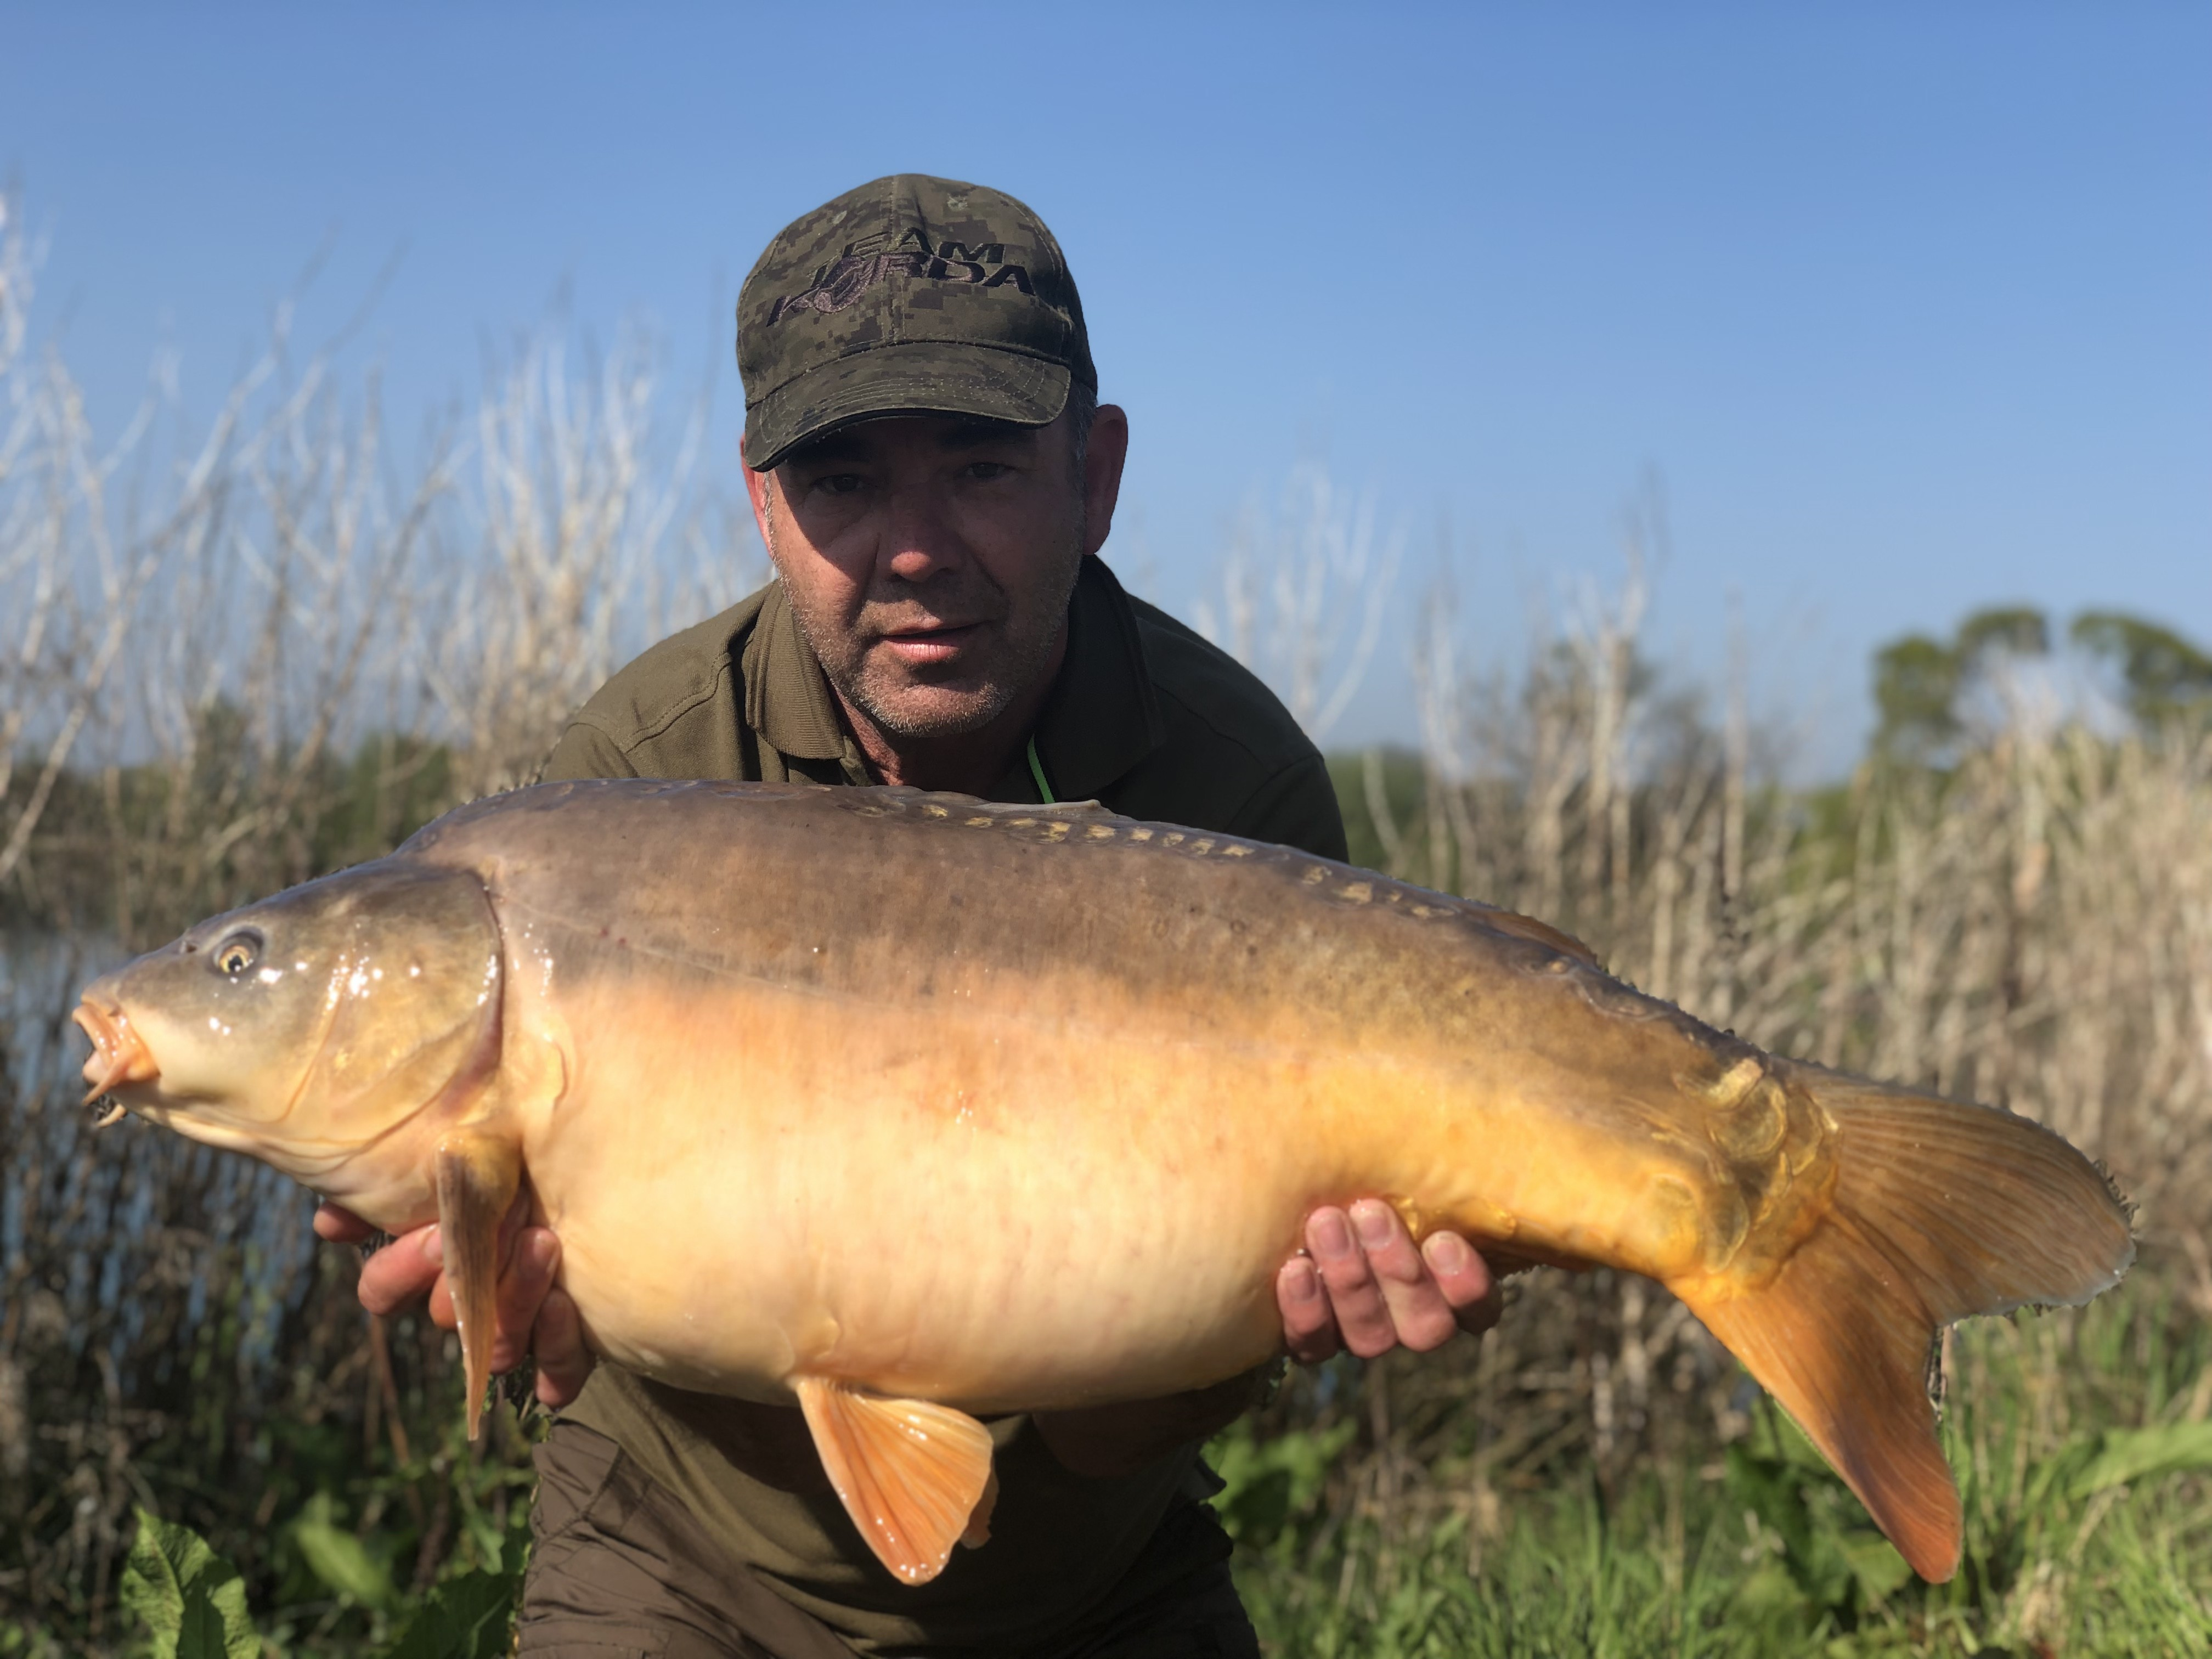 30lb 04oz  caught on Fattys Bait & Tackle Social